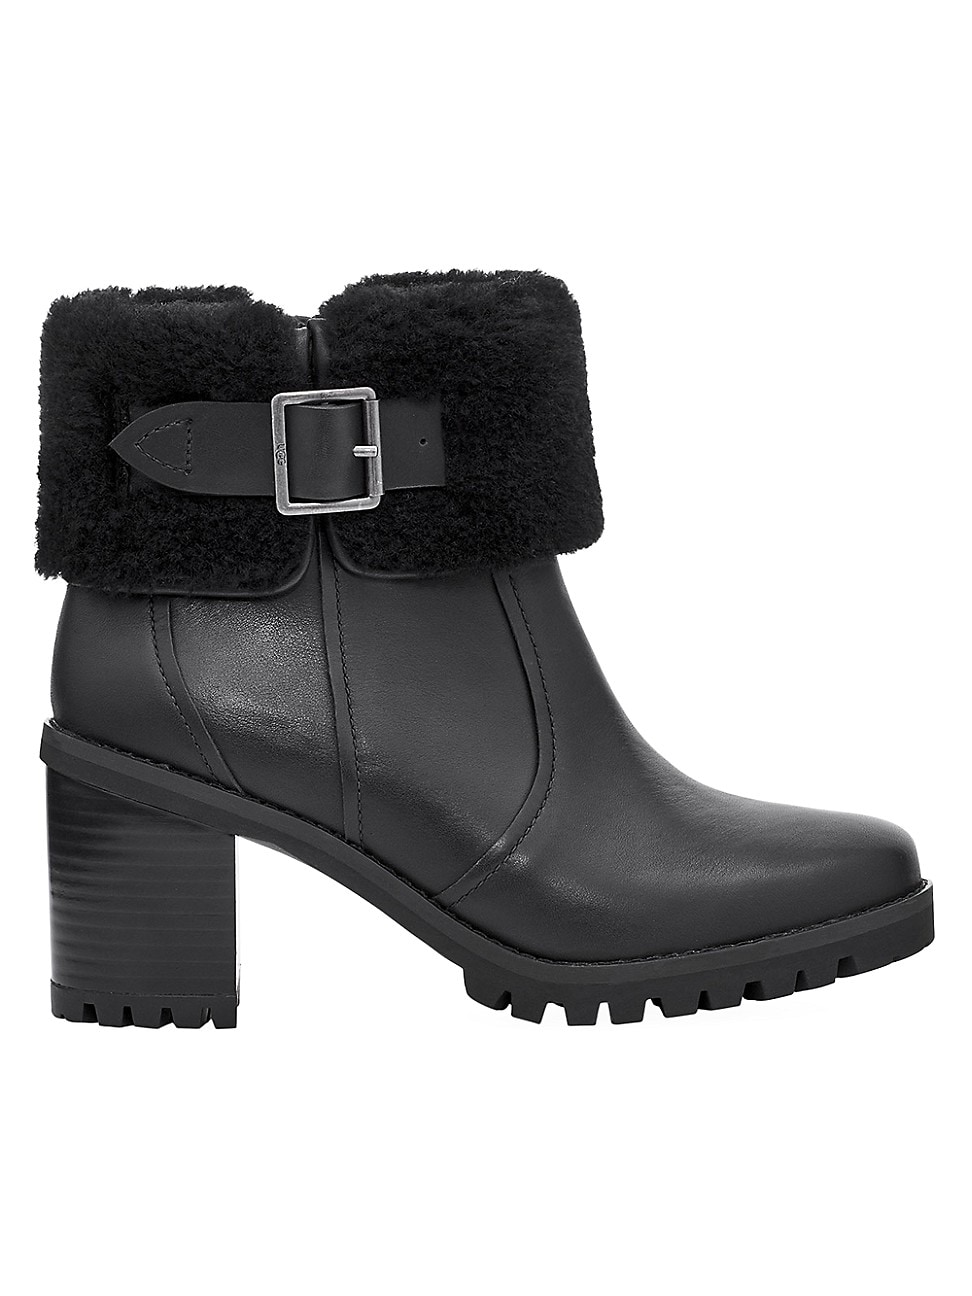 Ugg WOMEN'S ELISIANA FAUX FUR-TRIMMED LEATHER BOOTS